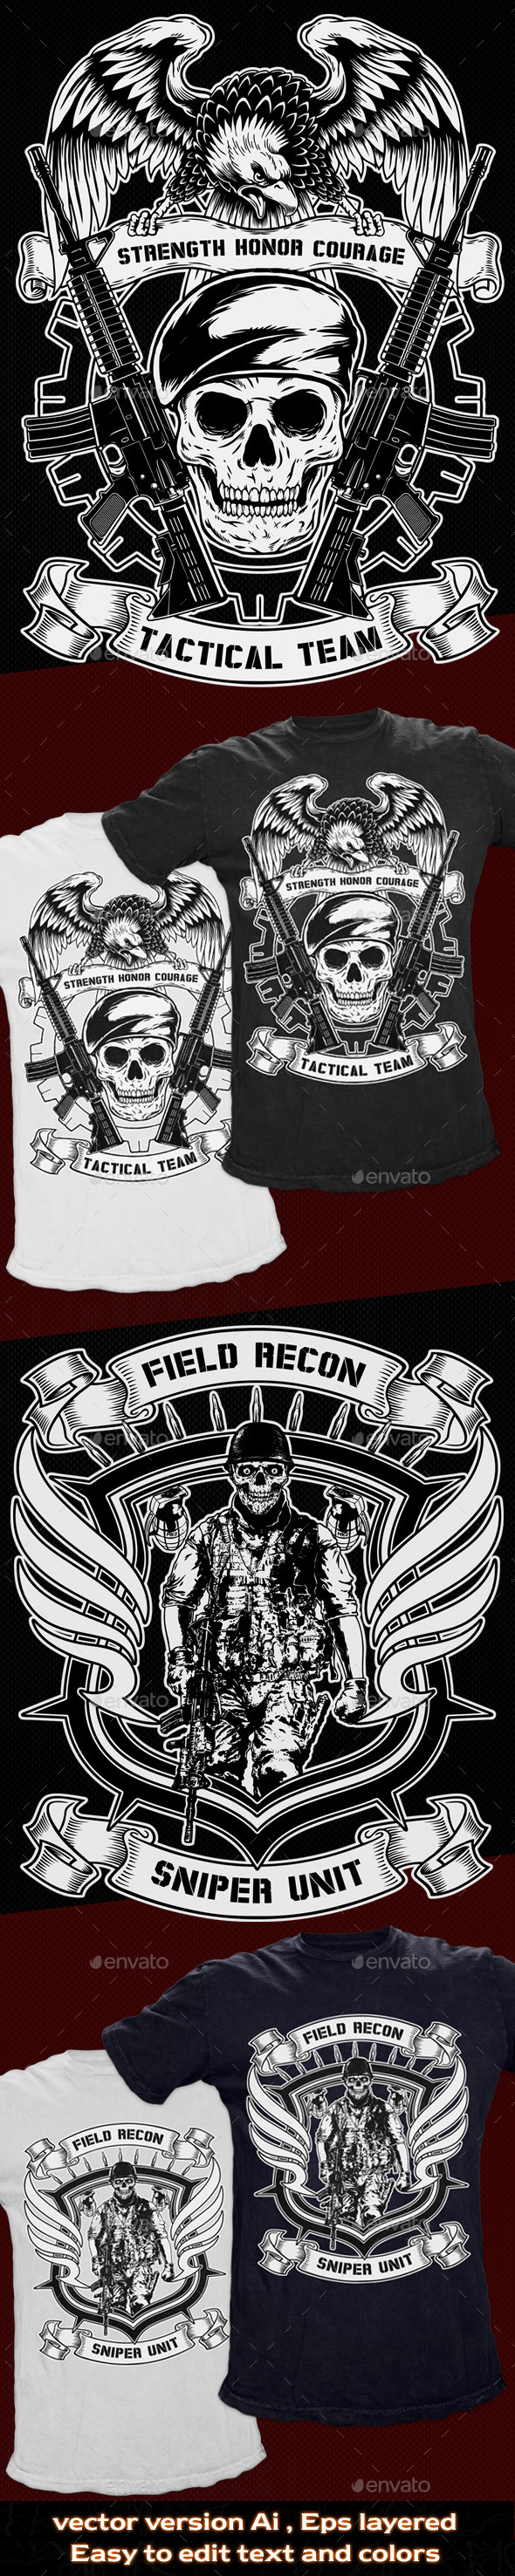 GraphicRiver 2 T-Shirt Template Military Theme 10875824